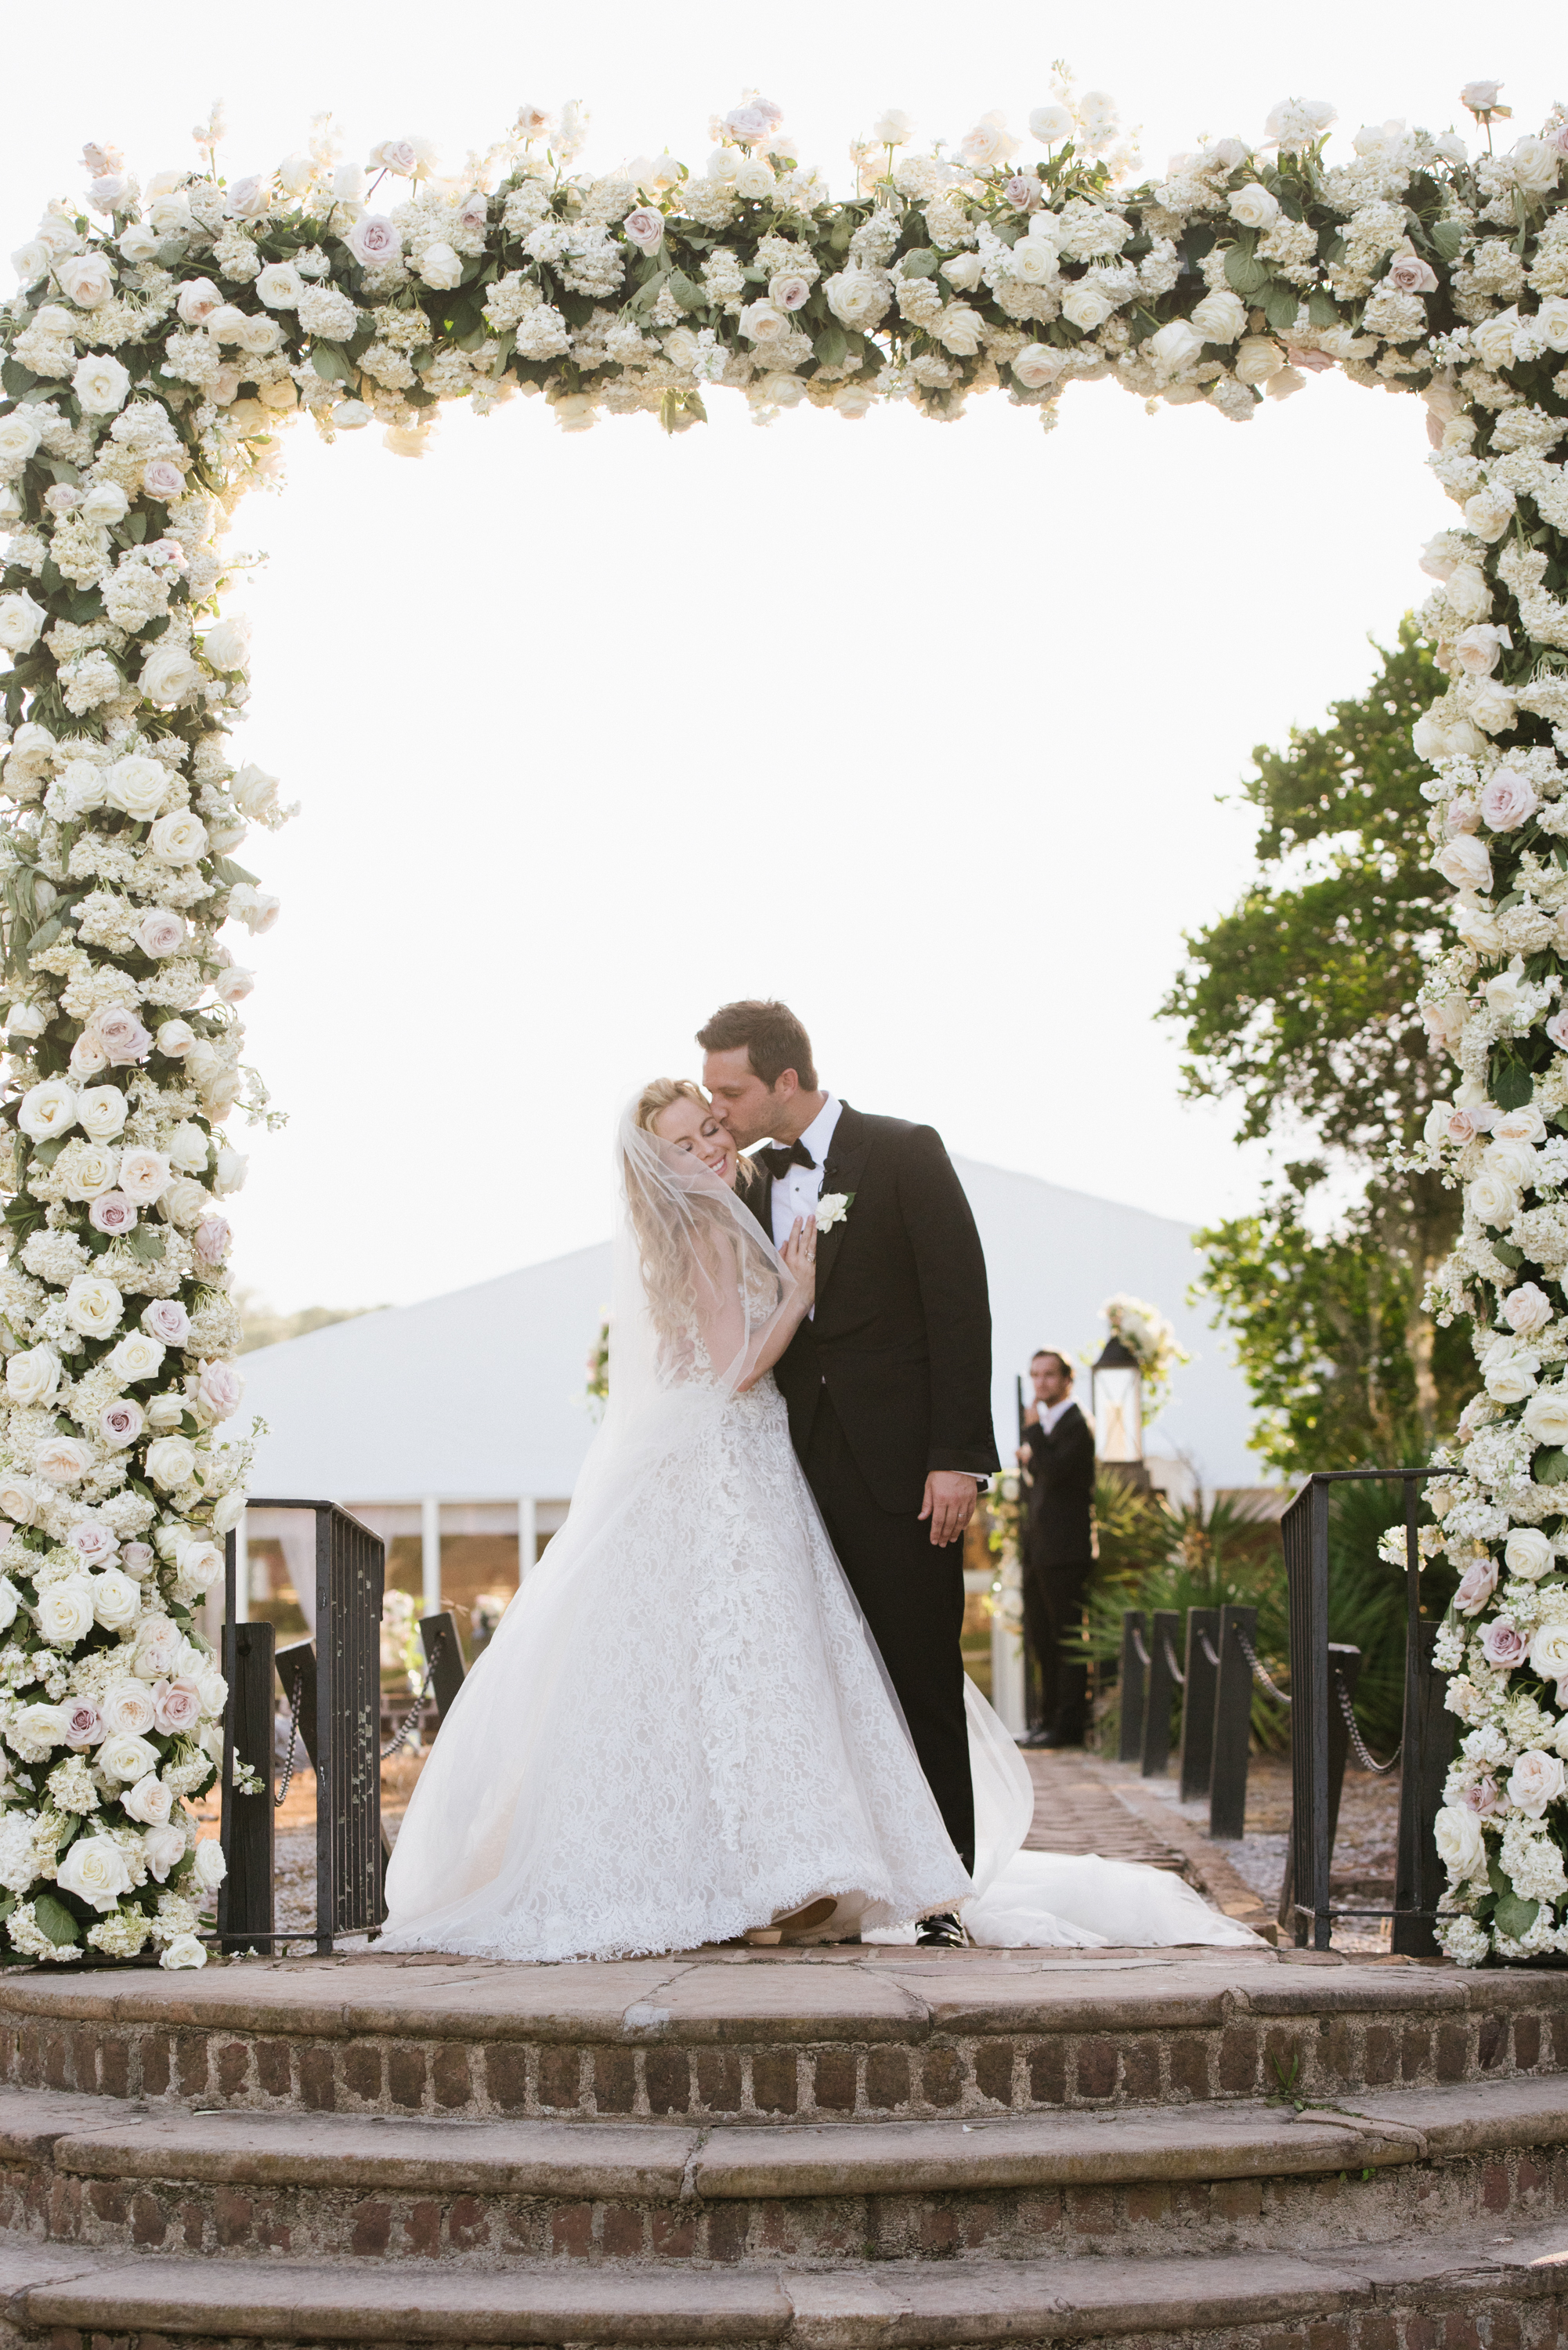 Tara Lipinski and Todd Kapostasy kiss under a floral arch in Charleston after their wedding ceremony; Sylvie Gil Photography